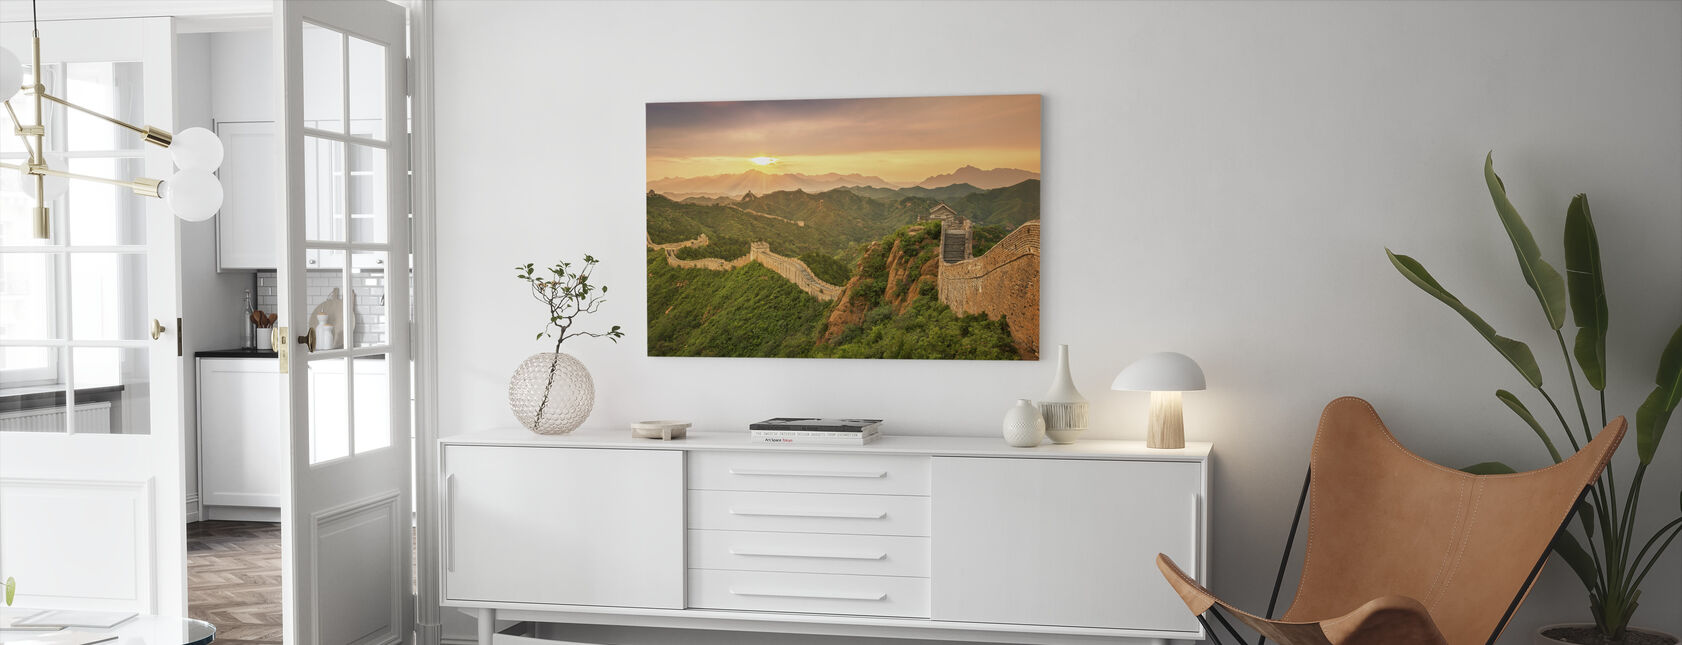 Great Wall of China at Sunrise - Canvas print - Living Room